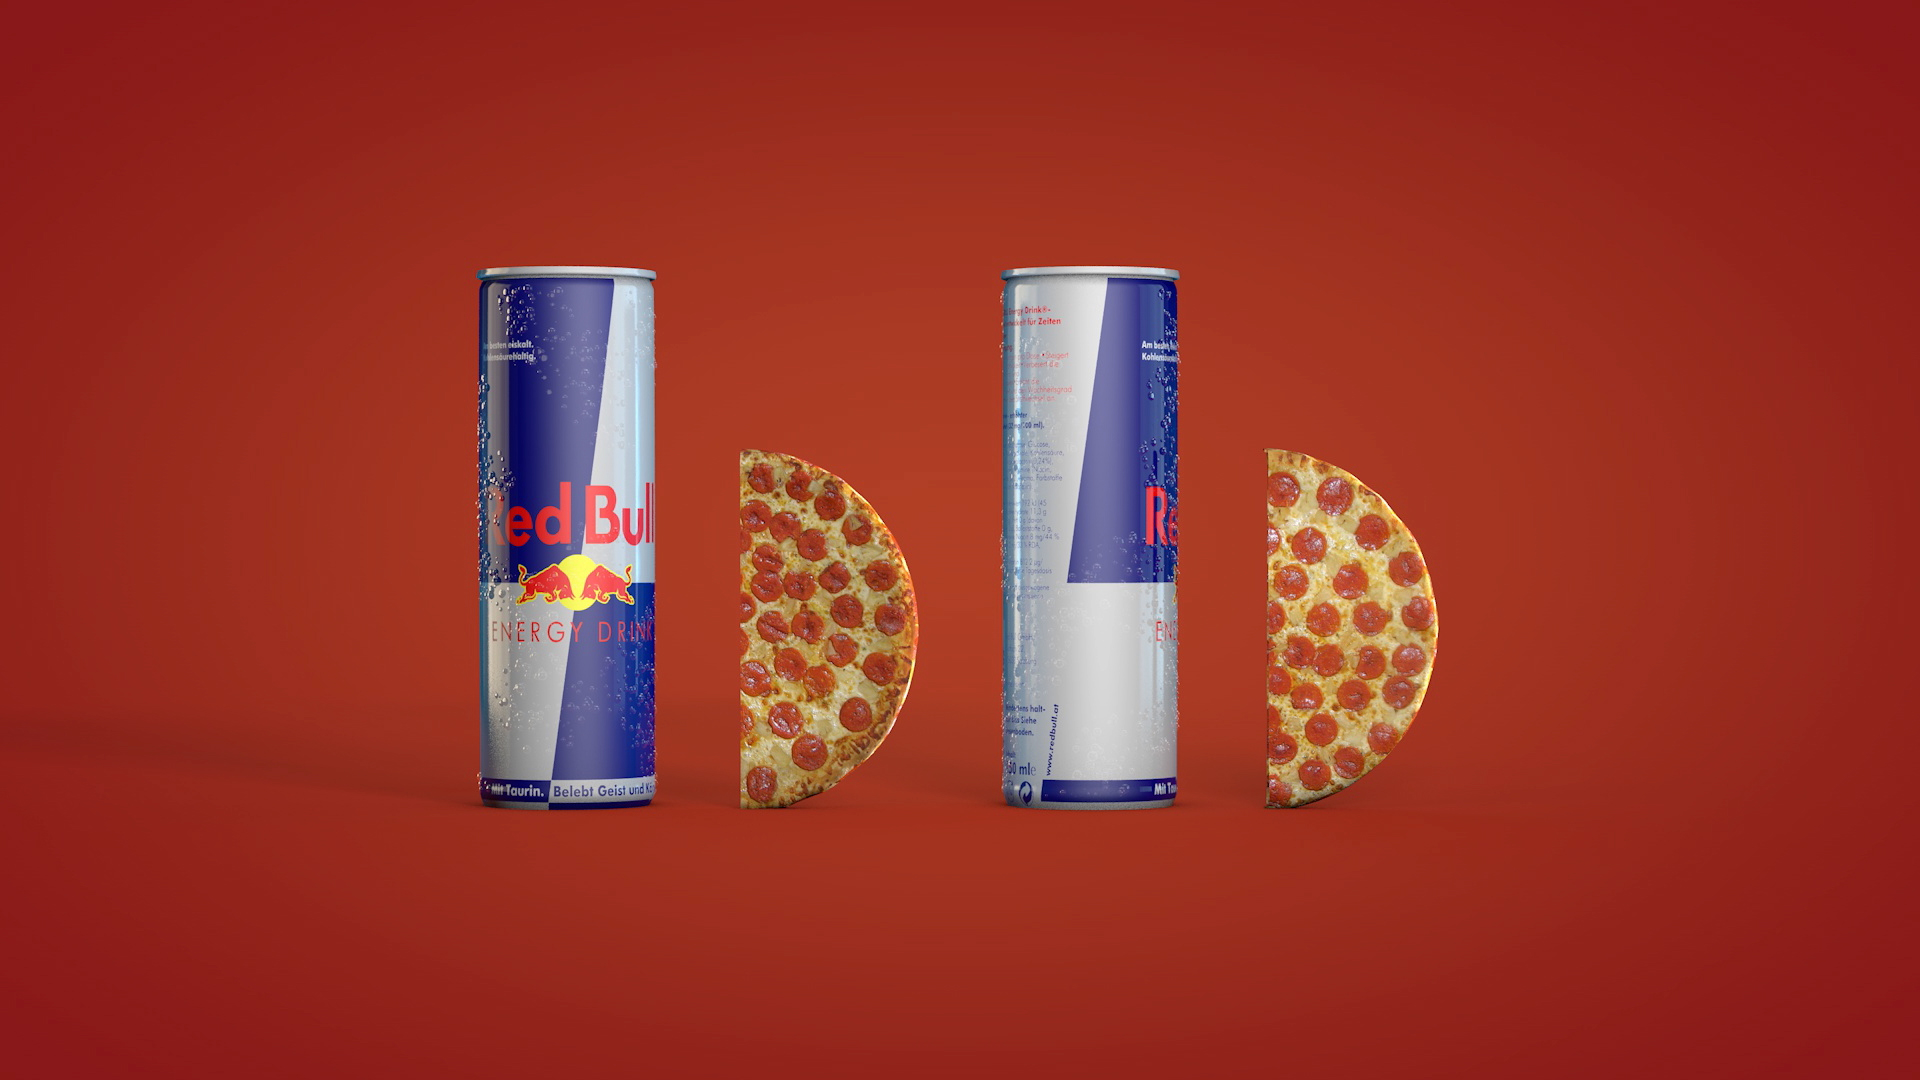 Bom Bom logo made of Red Bull and pepperoni pizza